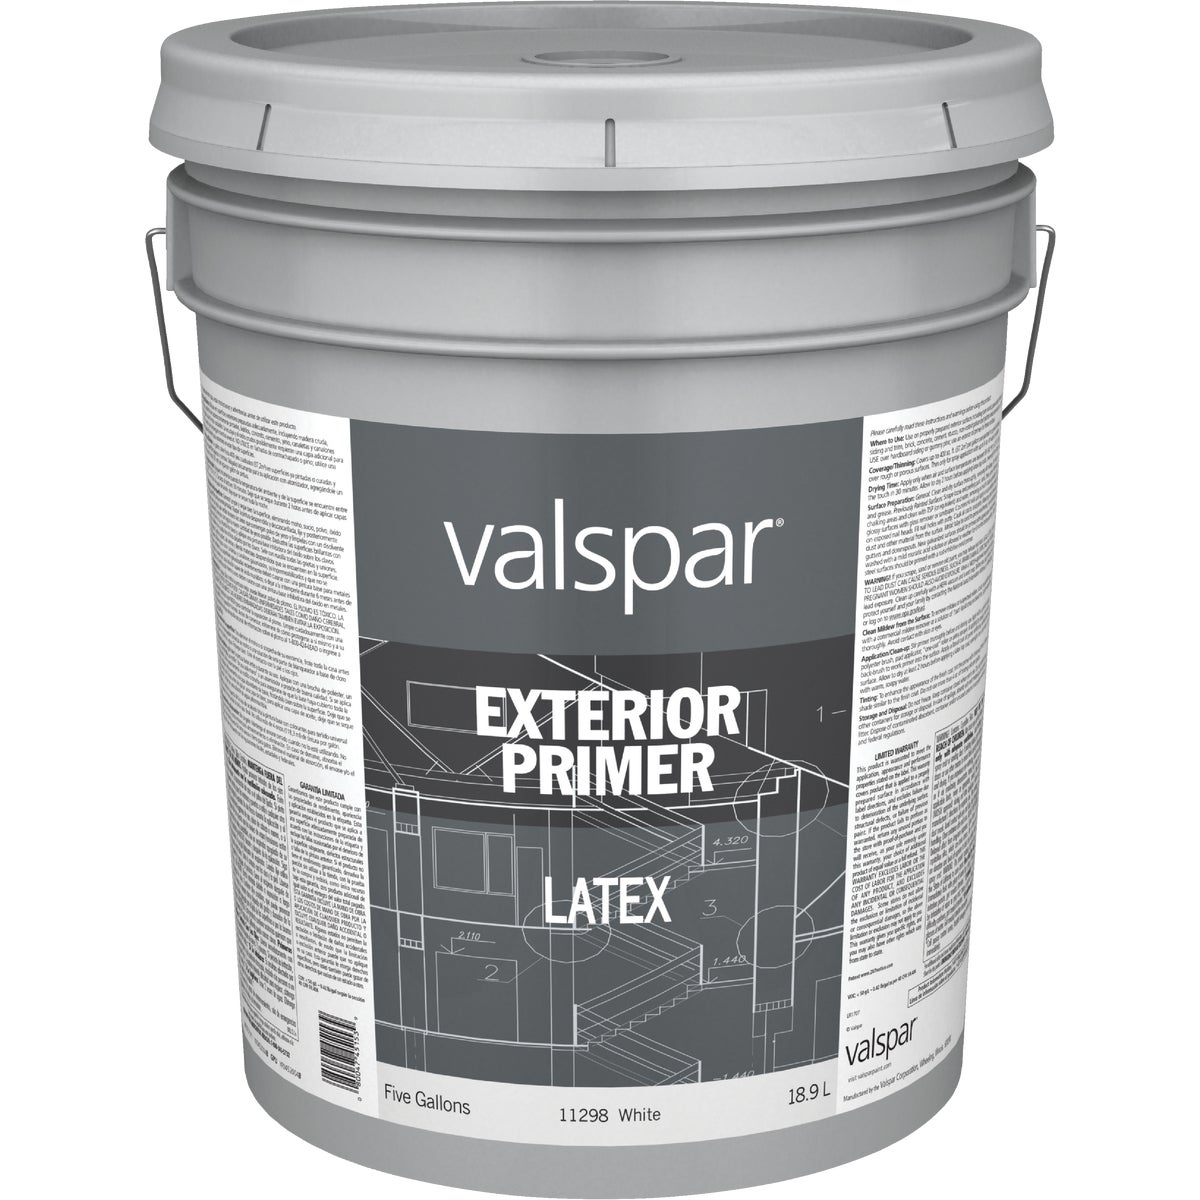 EXT ACRYLIC LATEX PRIMER - 045.0011298.008 by Valspar Corp